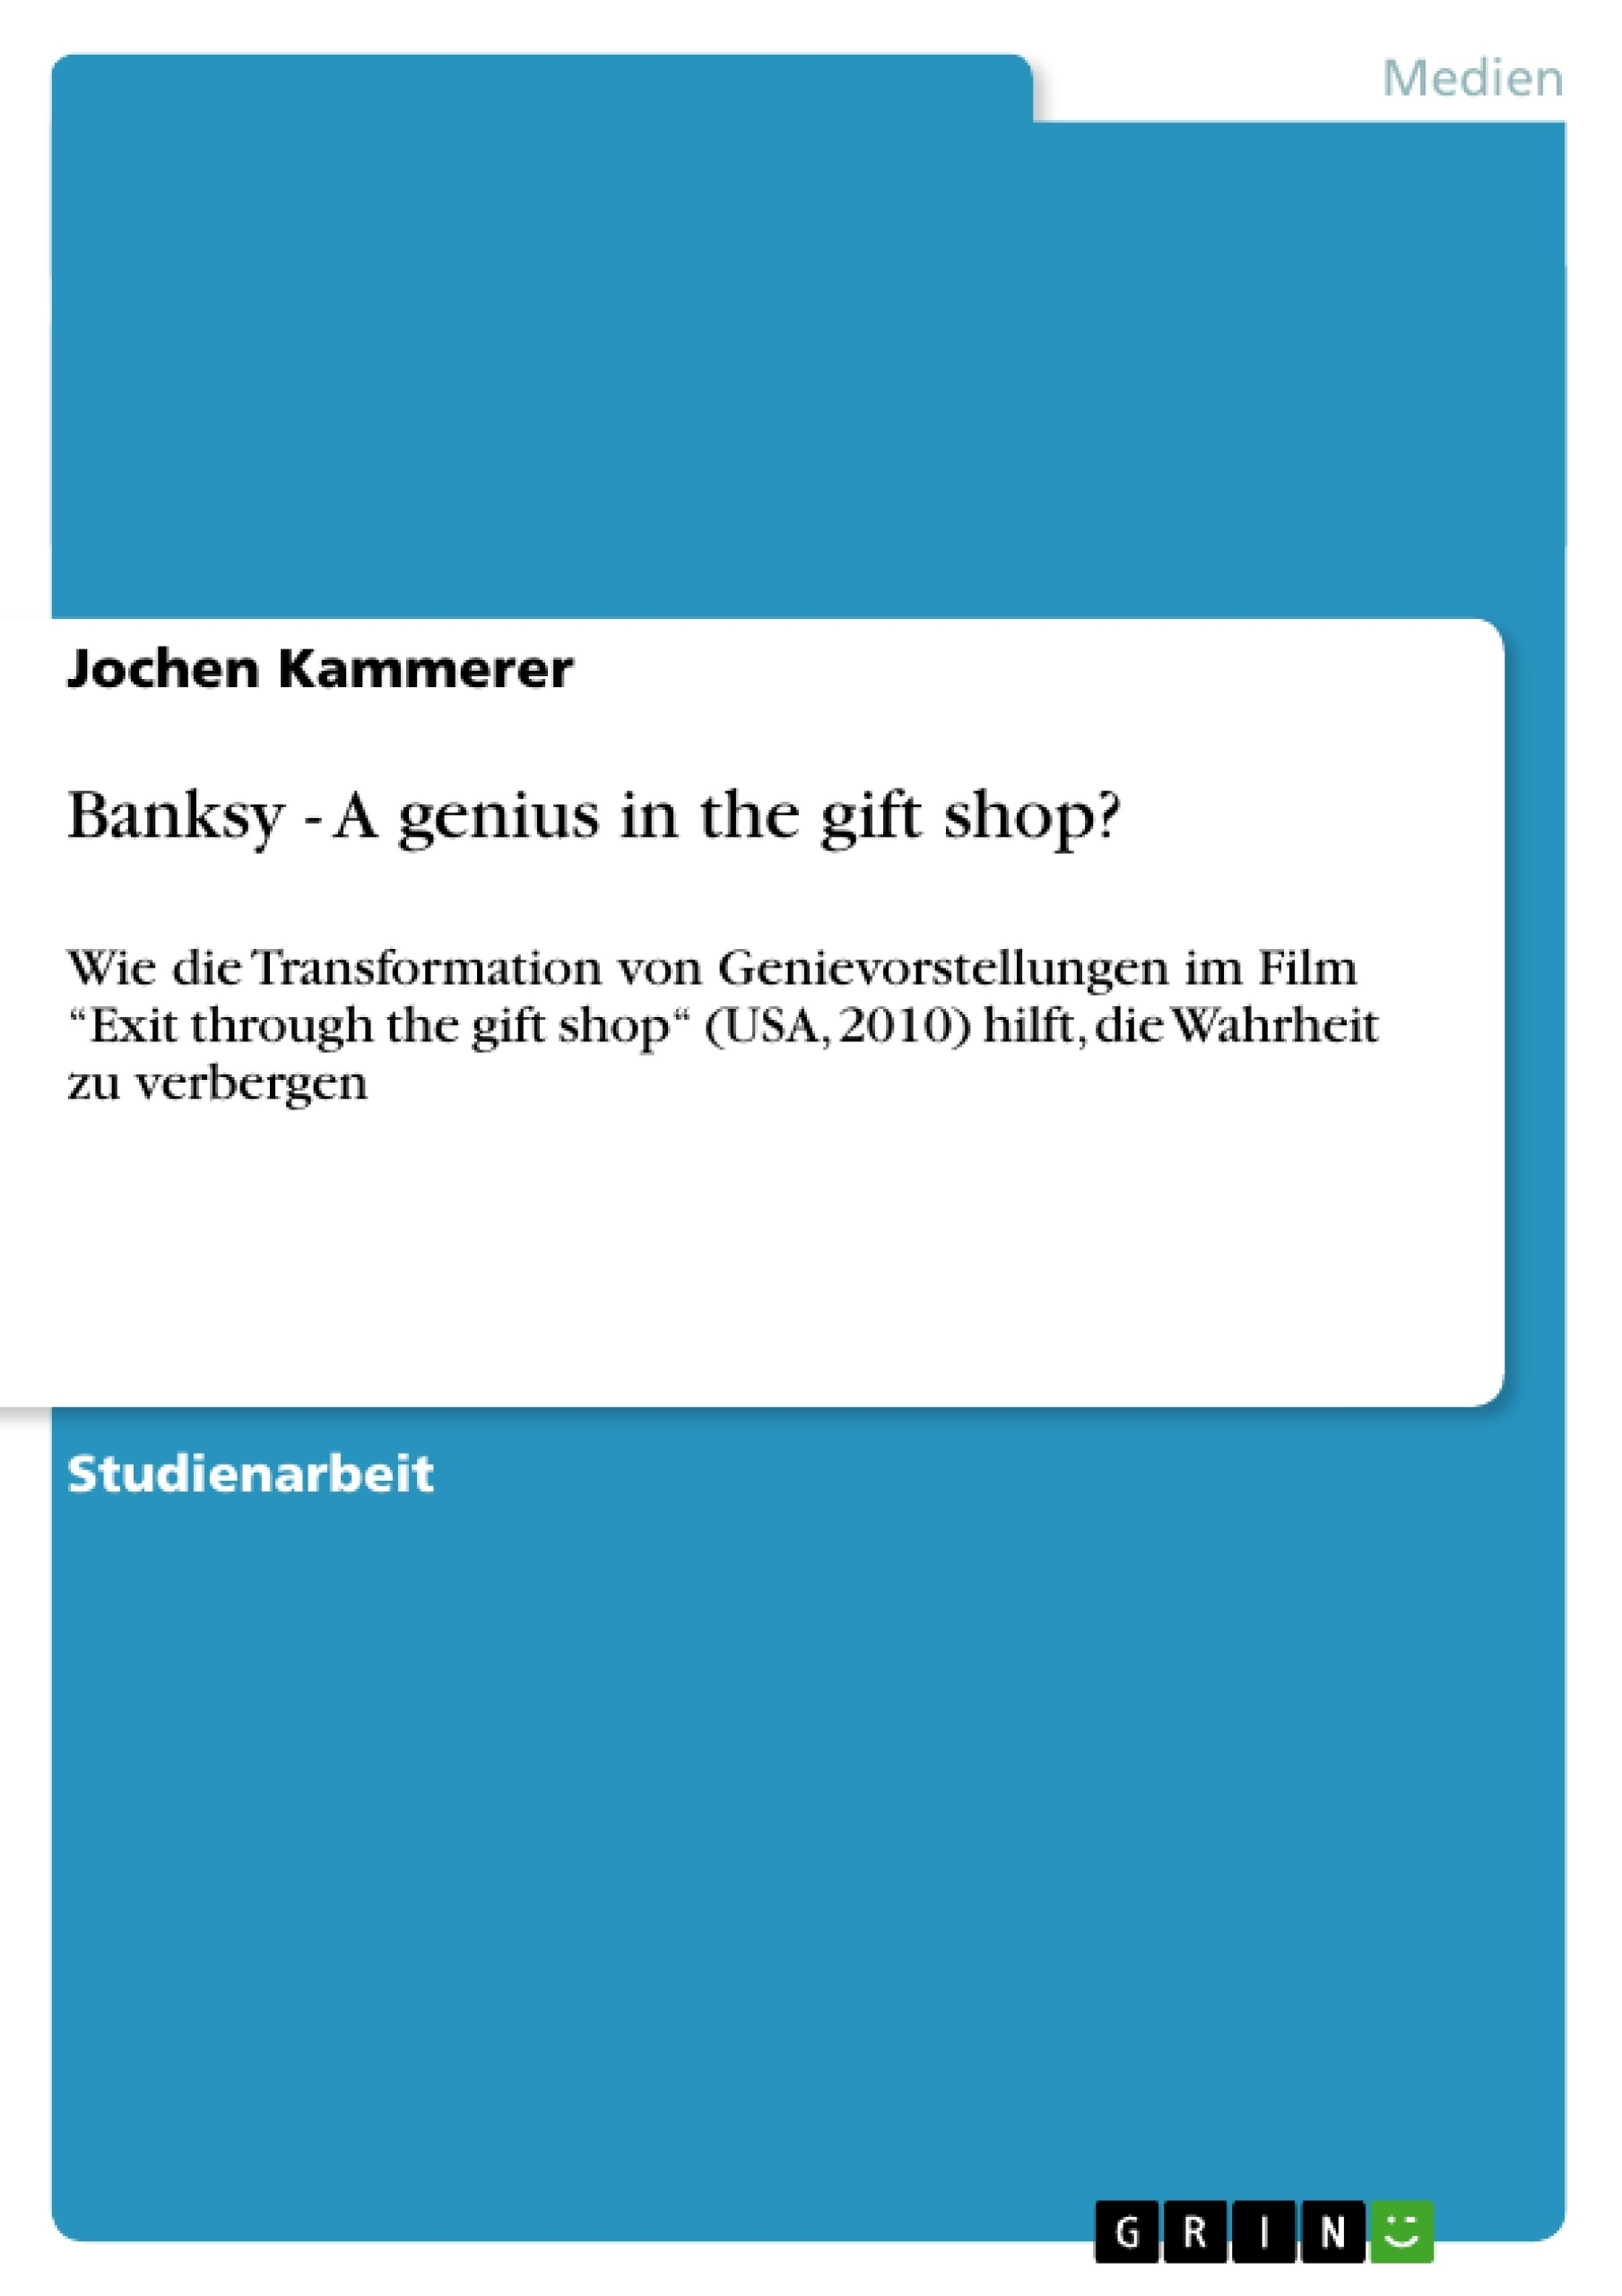 Titel: Banksy - A genius in the gift shop?